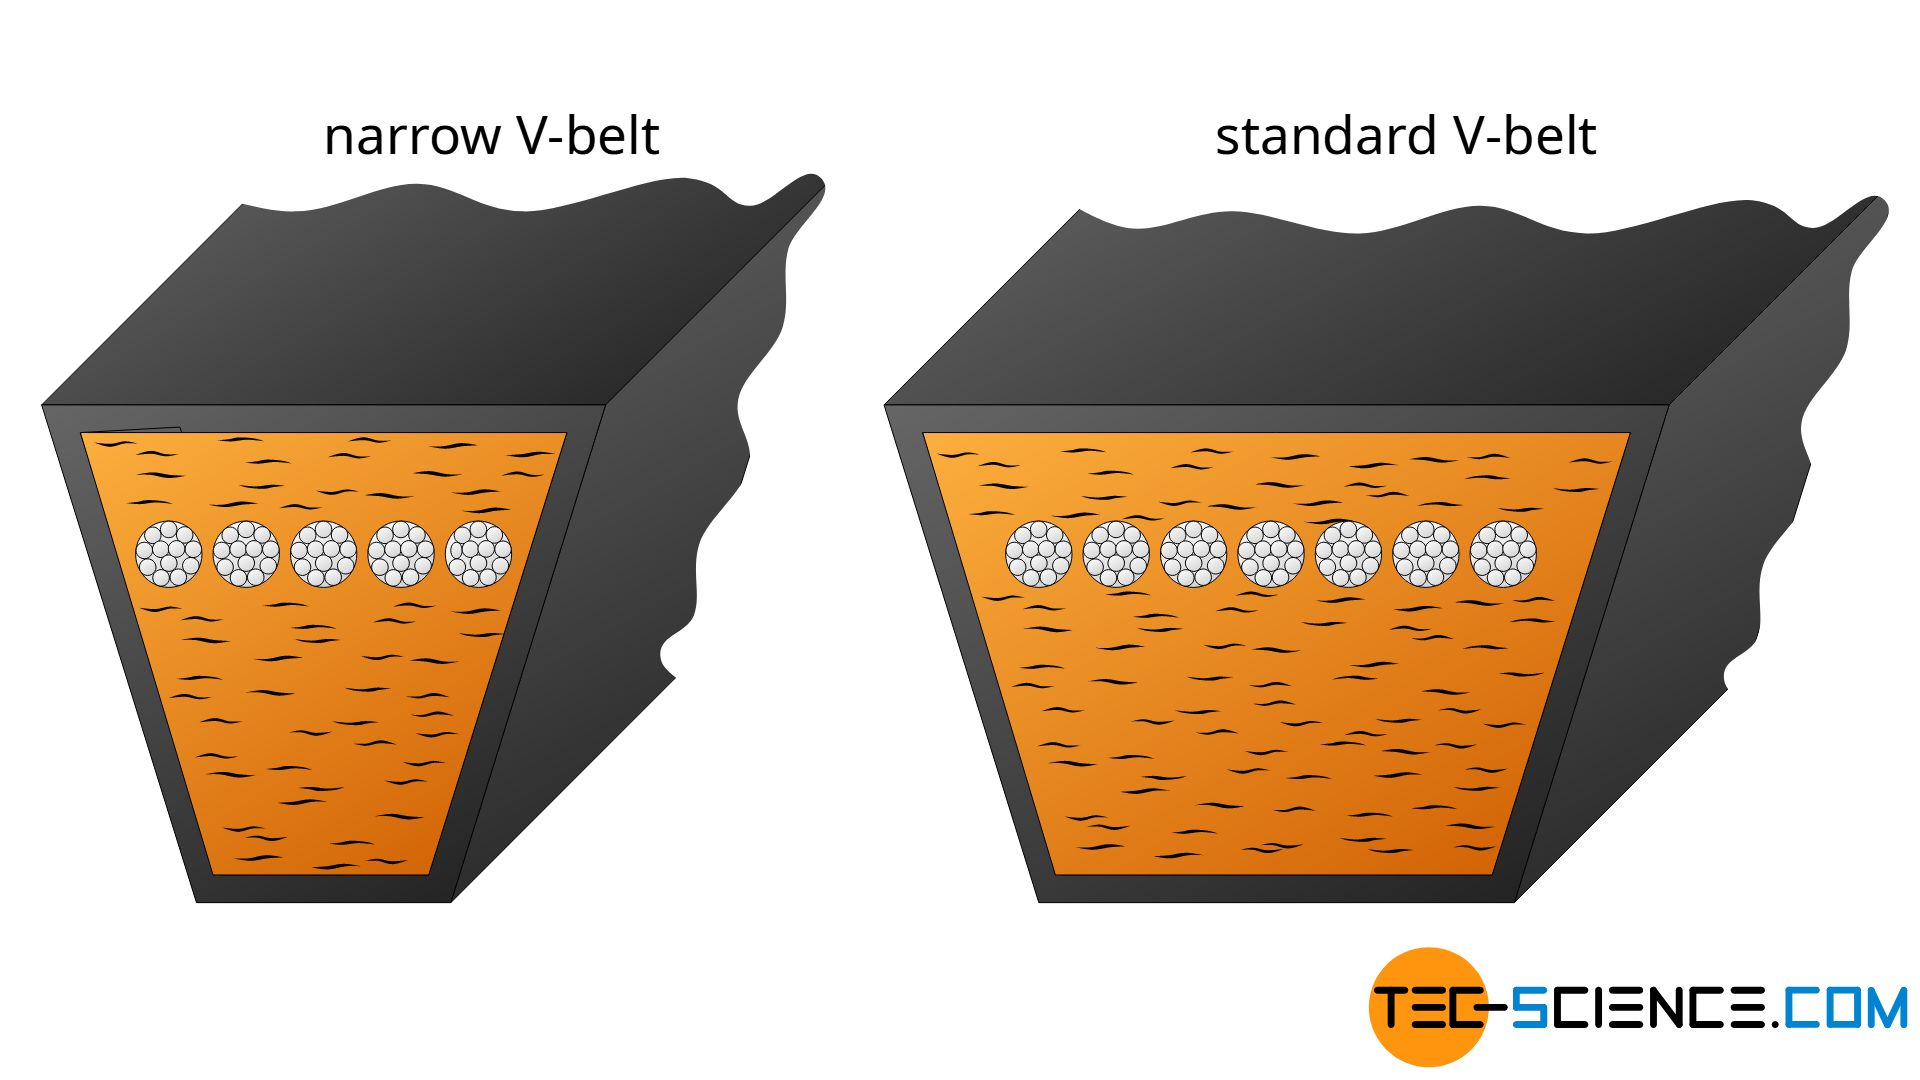 Narrow and standard V-belt in comparison